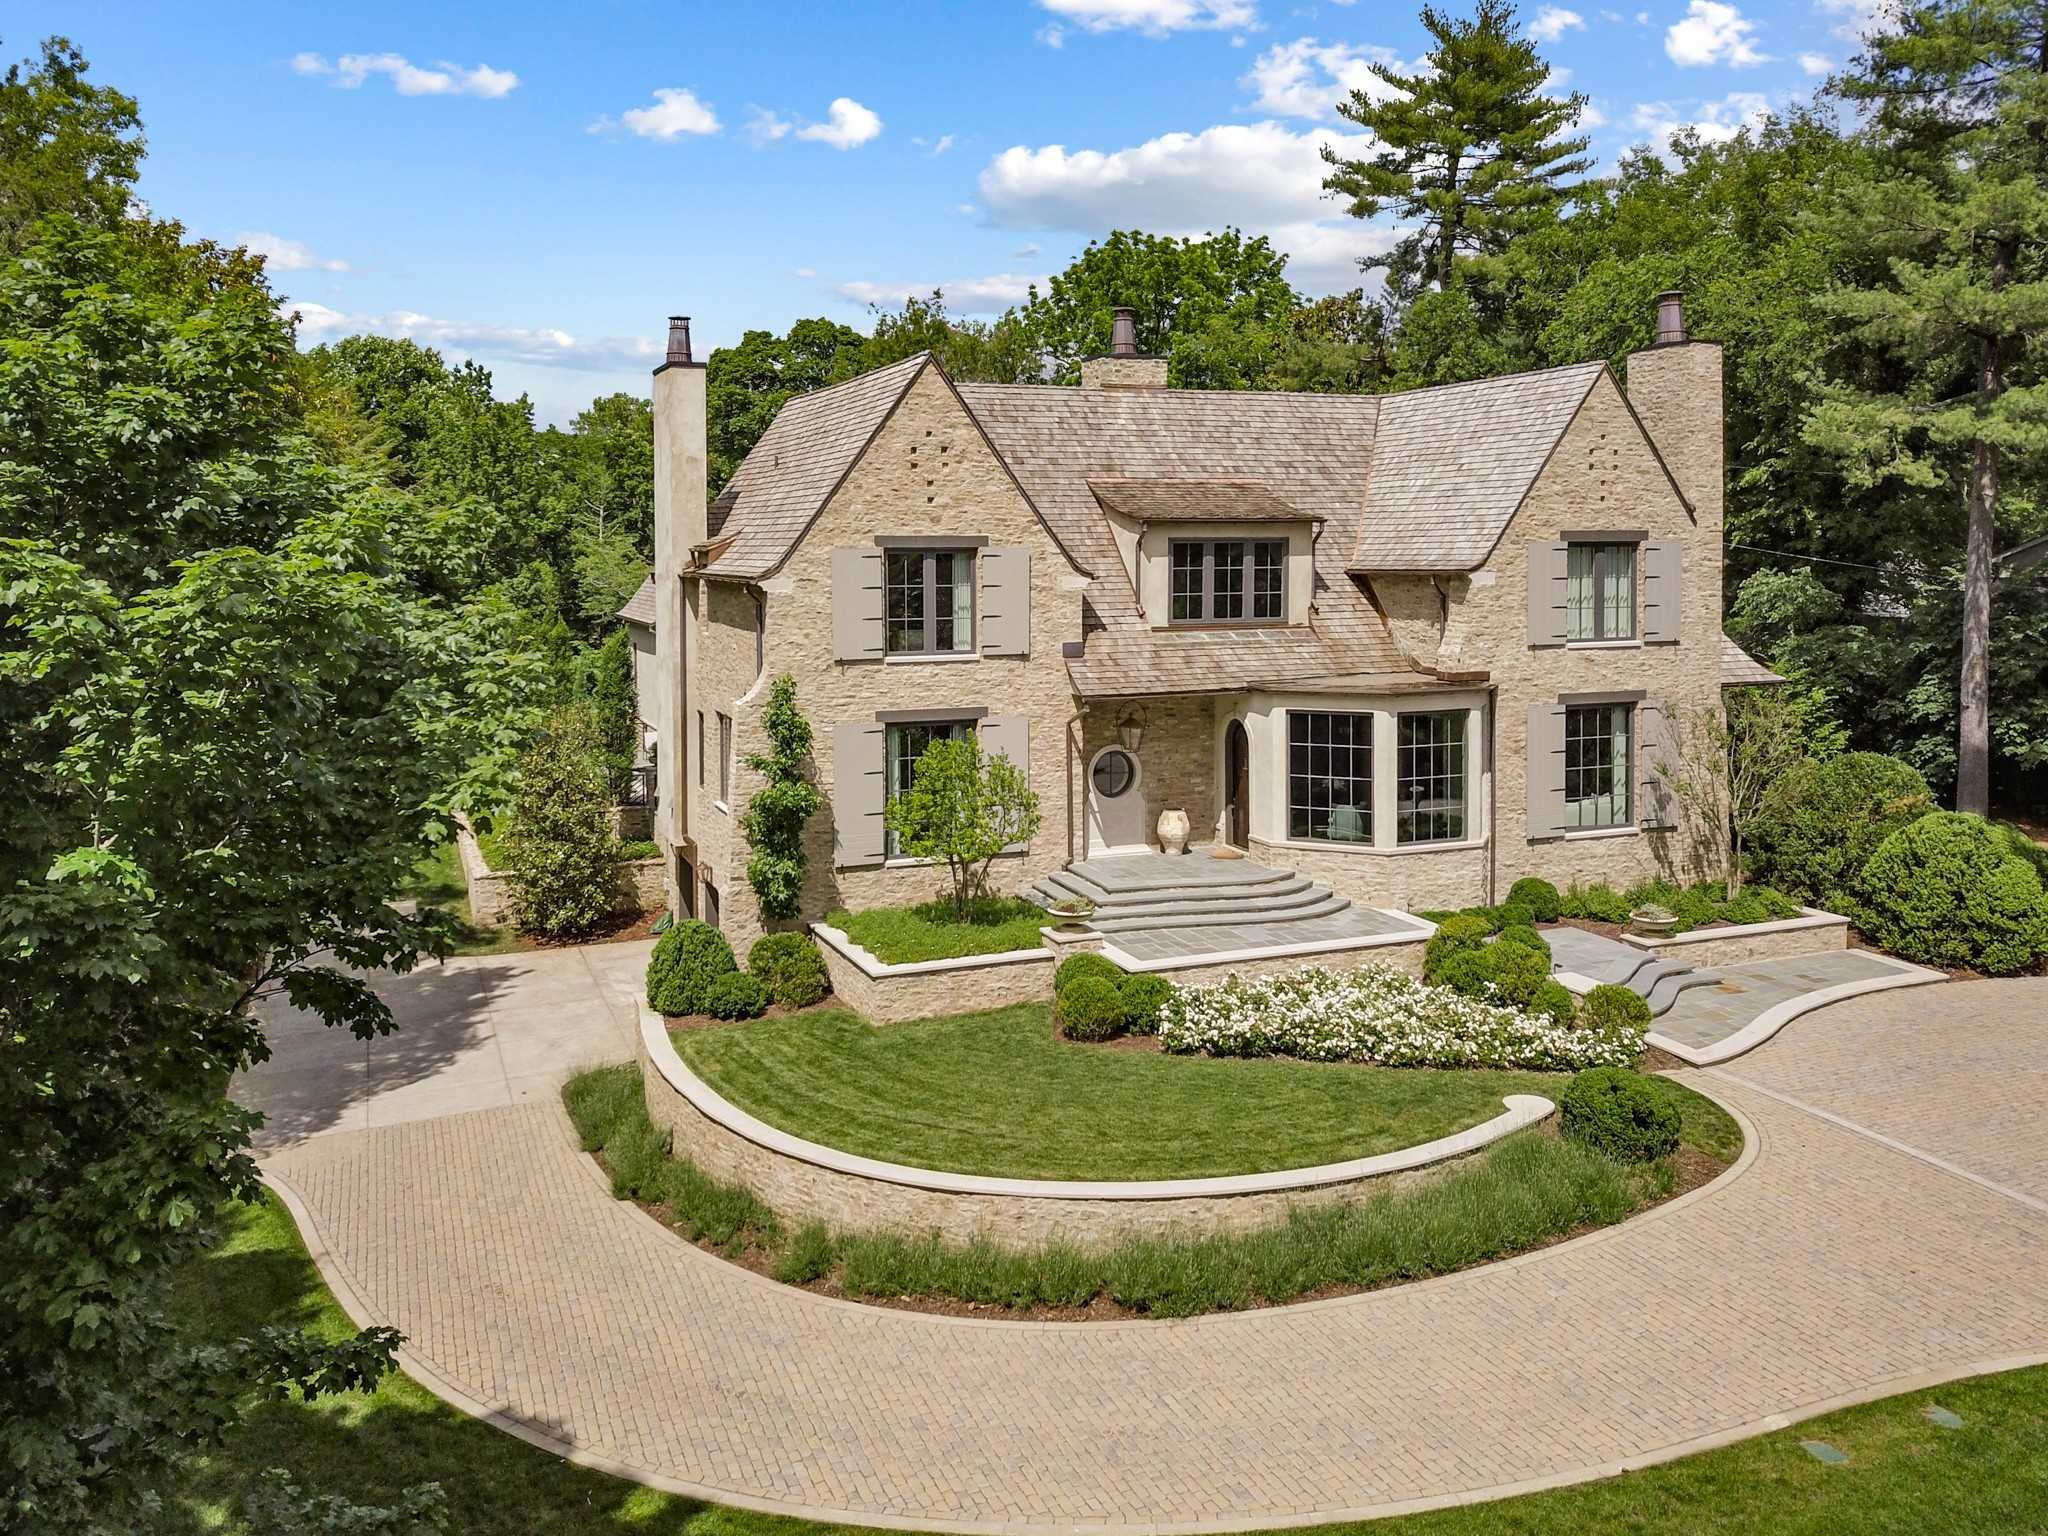 $7,200,000 - 5Br/5Ba -  for Sale in Belle Meade, Nashville